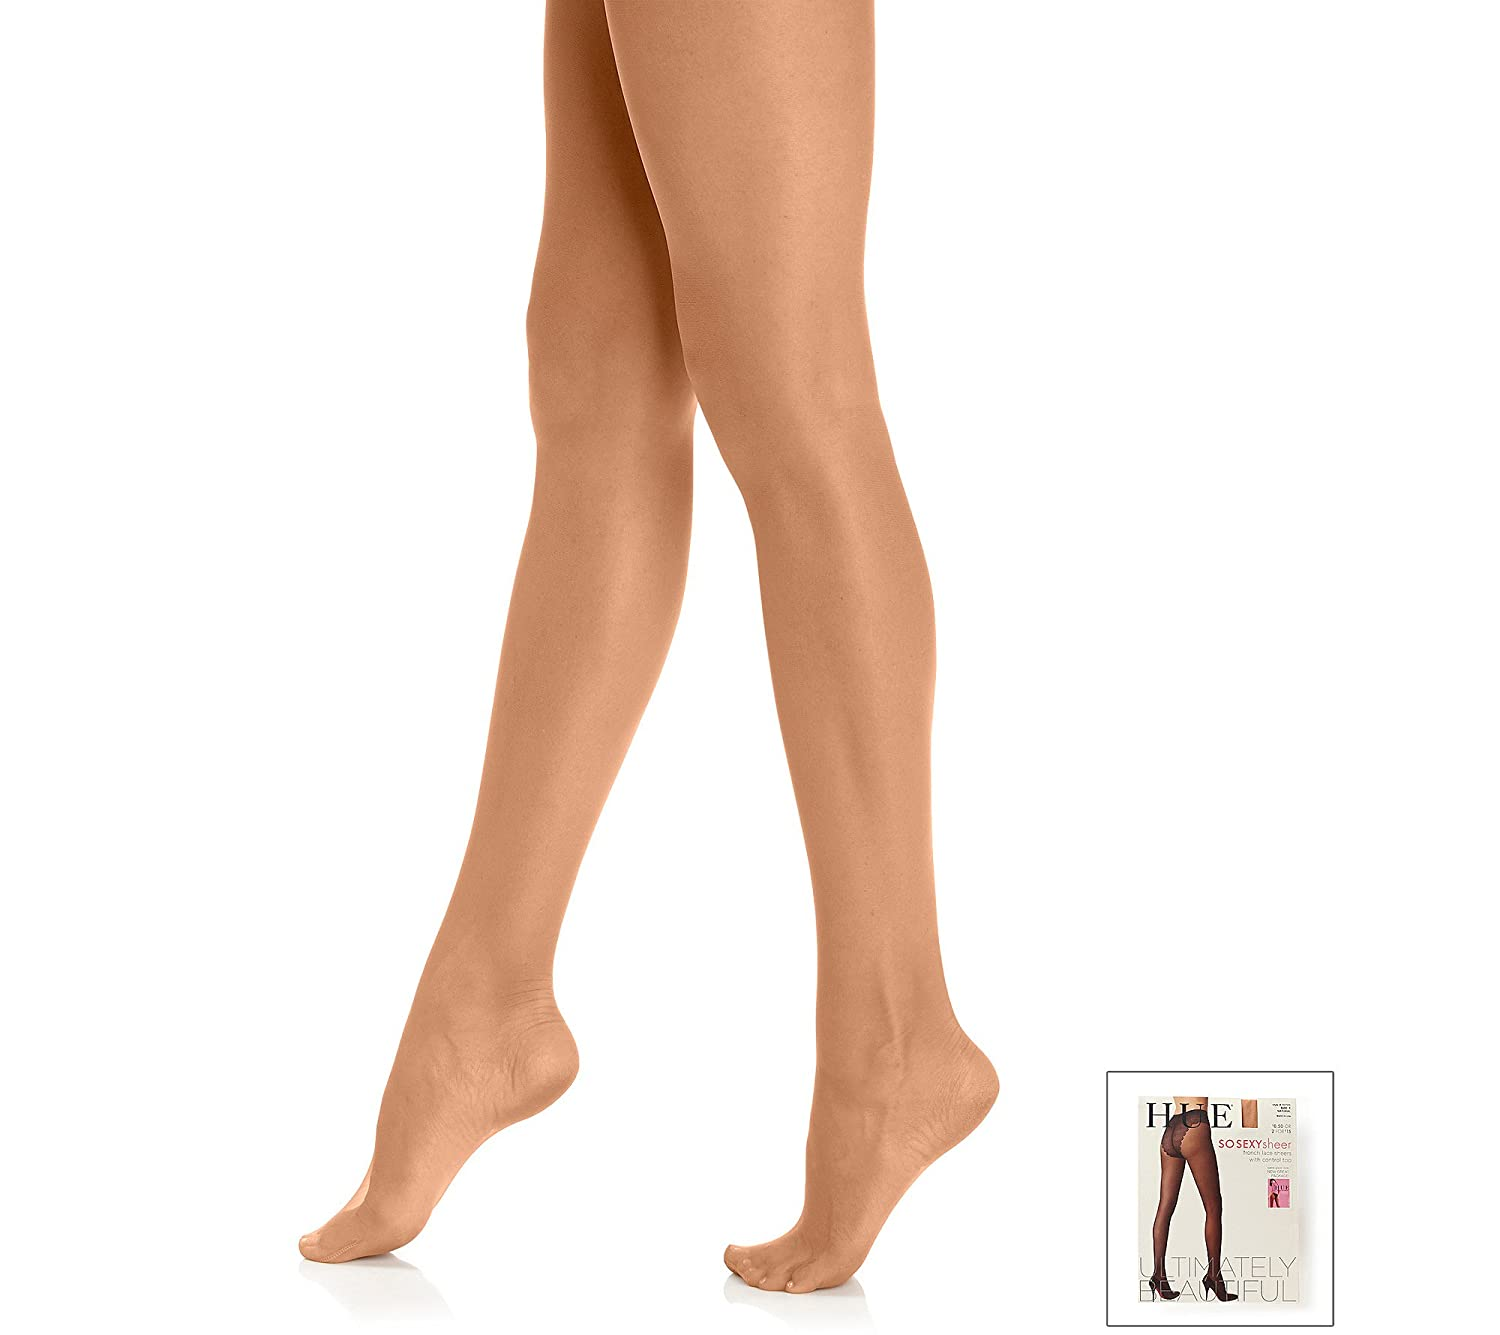 d40001617842f HUE French Lace Panty Pantyhose with Control Top at Amazon Women's Clothing  store: